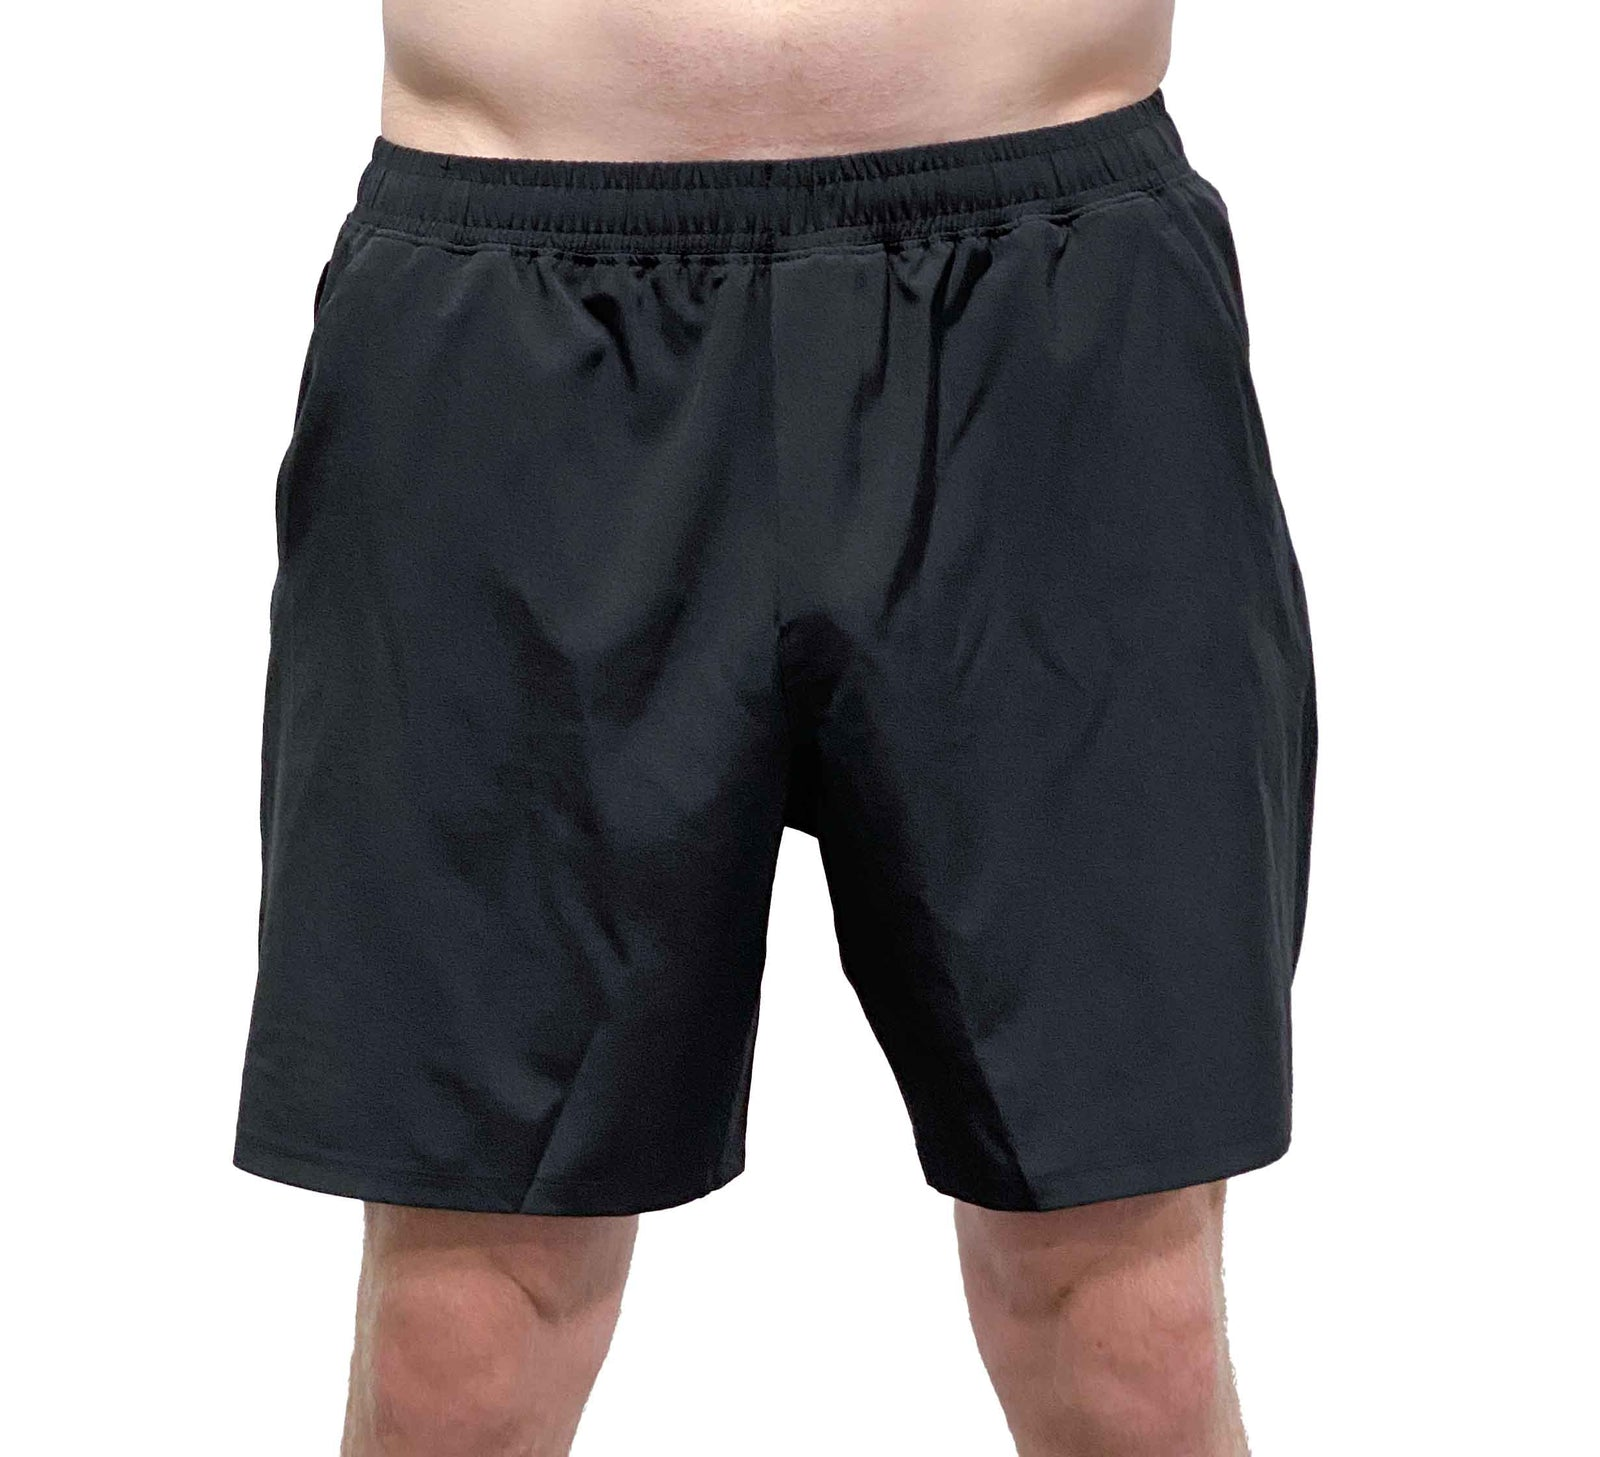 Commuter Workout Shorts